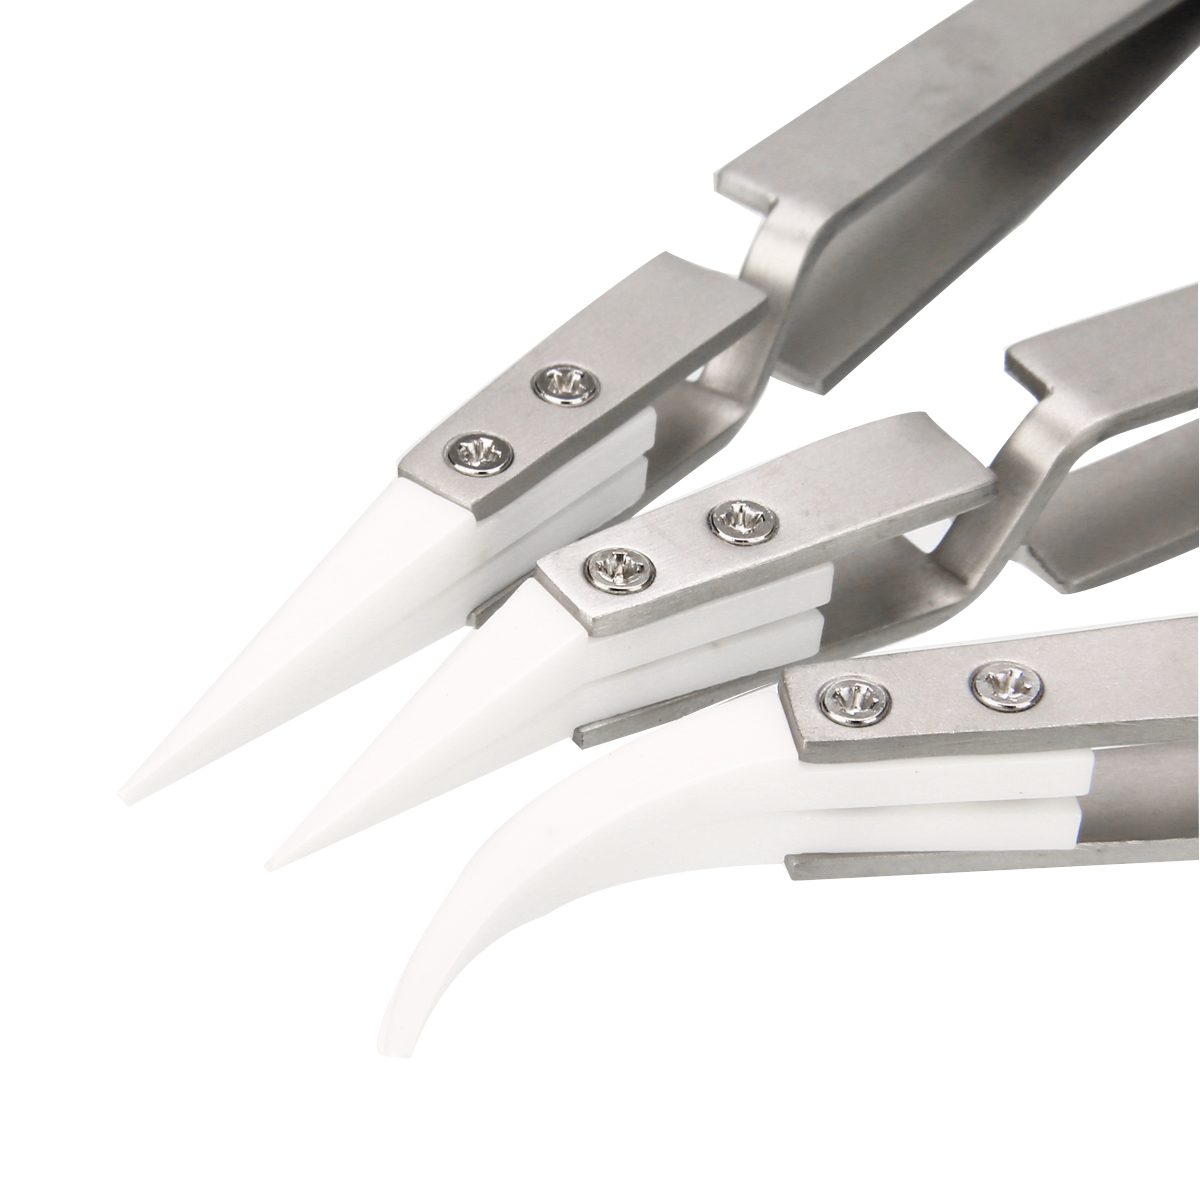 3pcs/set Anti-Static Reverse Ceramic Tweezers Electronic Heat Resistant Conductive Curved Straight Tweezers Hand Tools